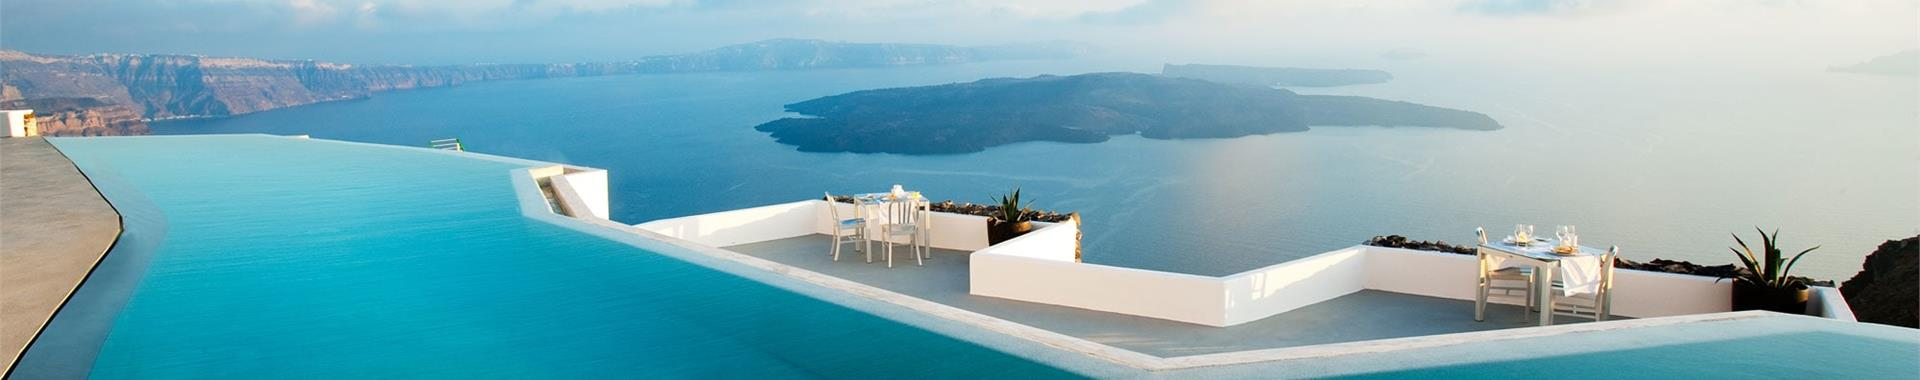 Oia or Messaria Santorini Hotels on the Caldera